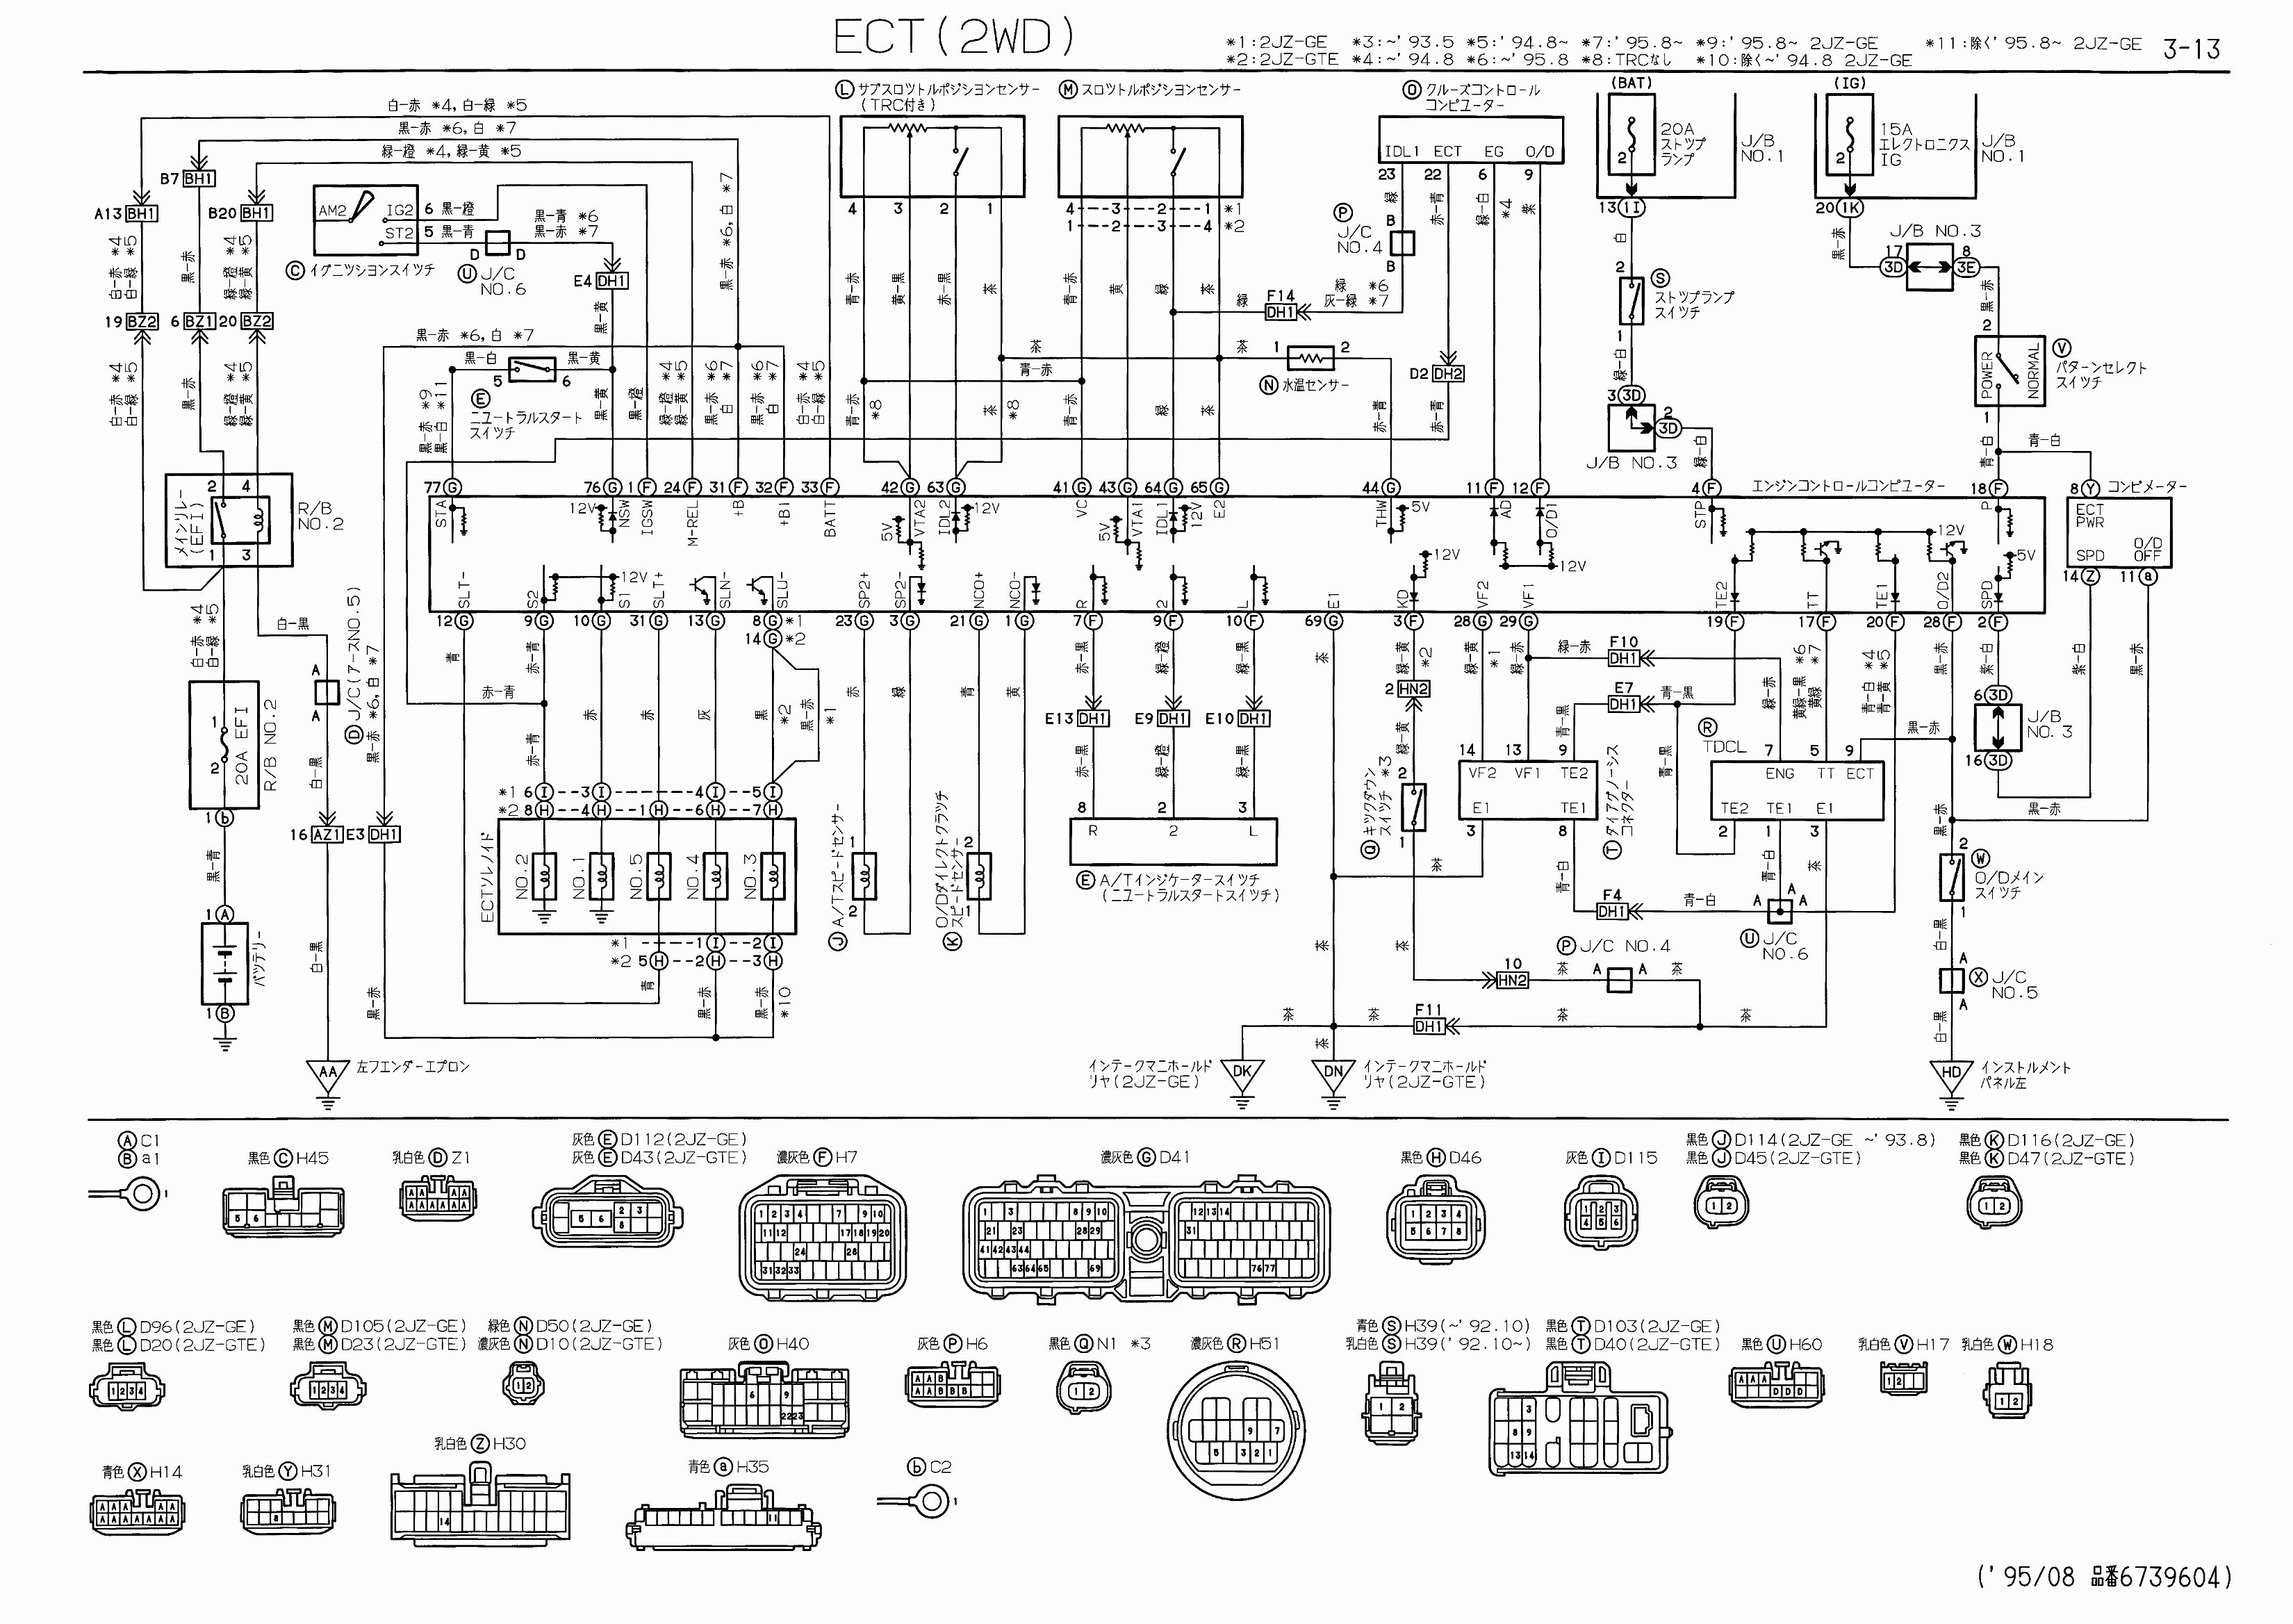 Infiniti Qx4 Engine Diagram 2002 Dodge Durango Engine